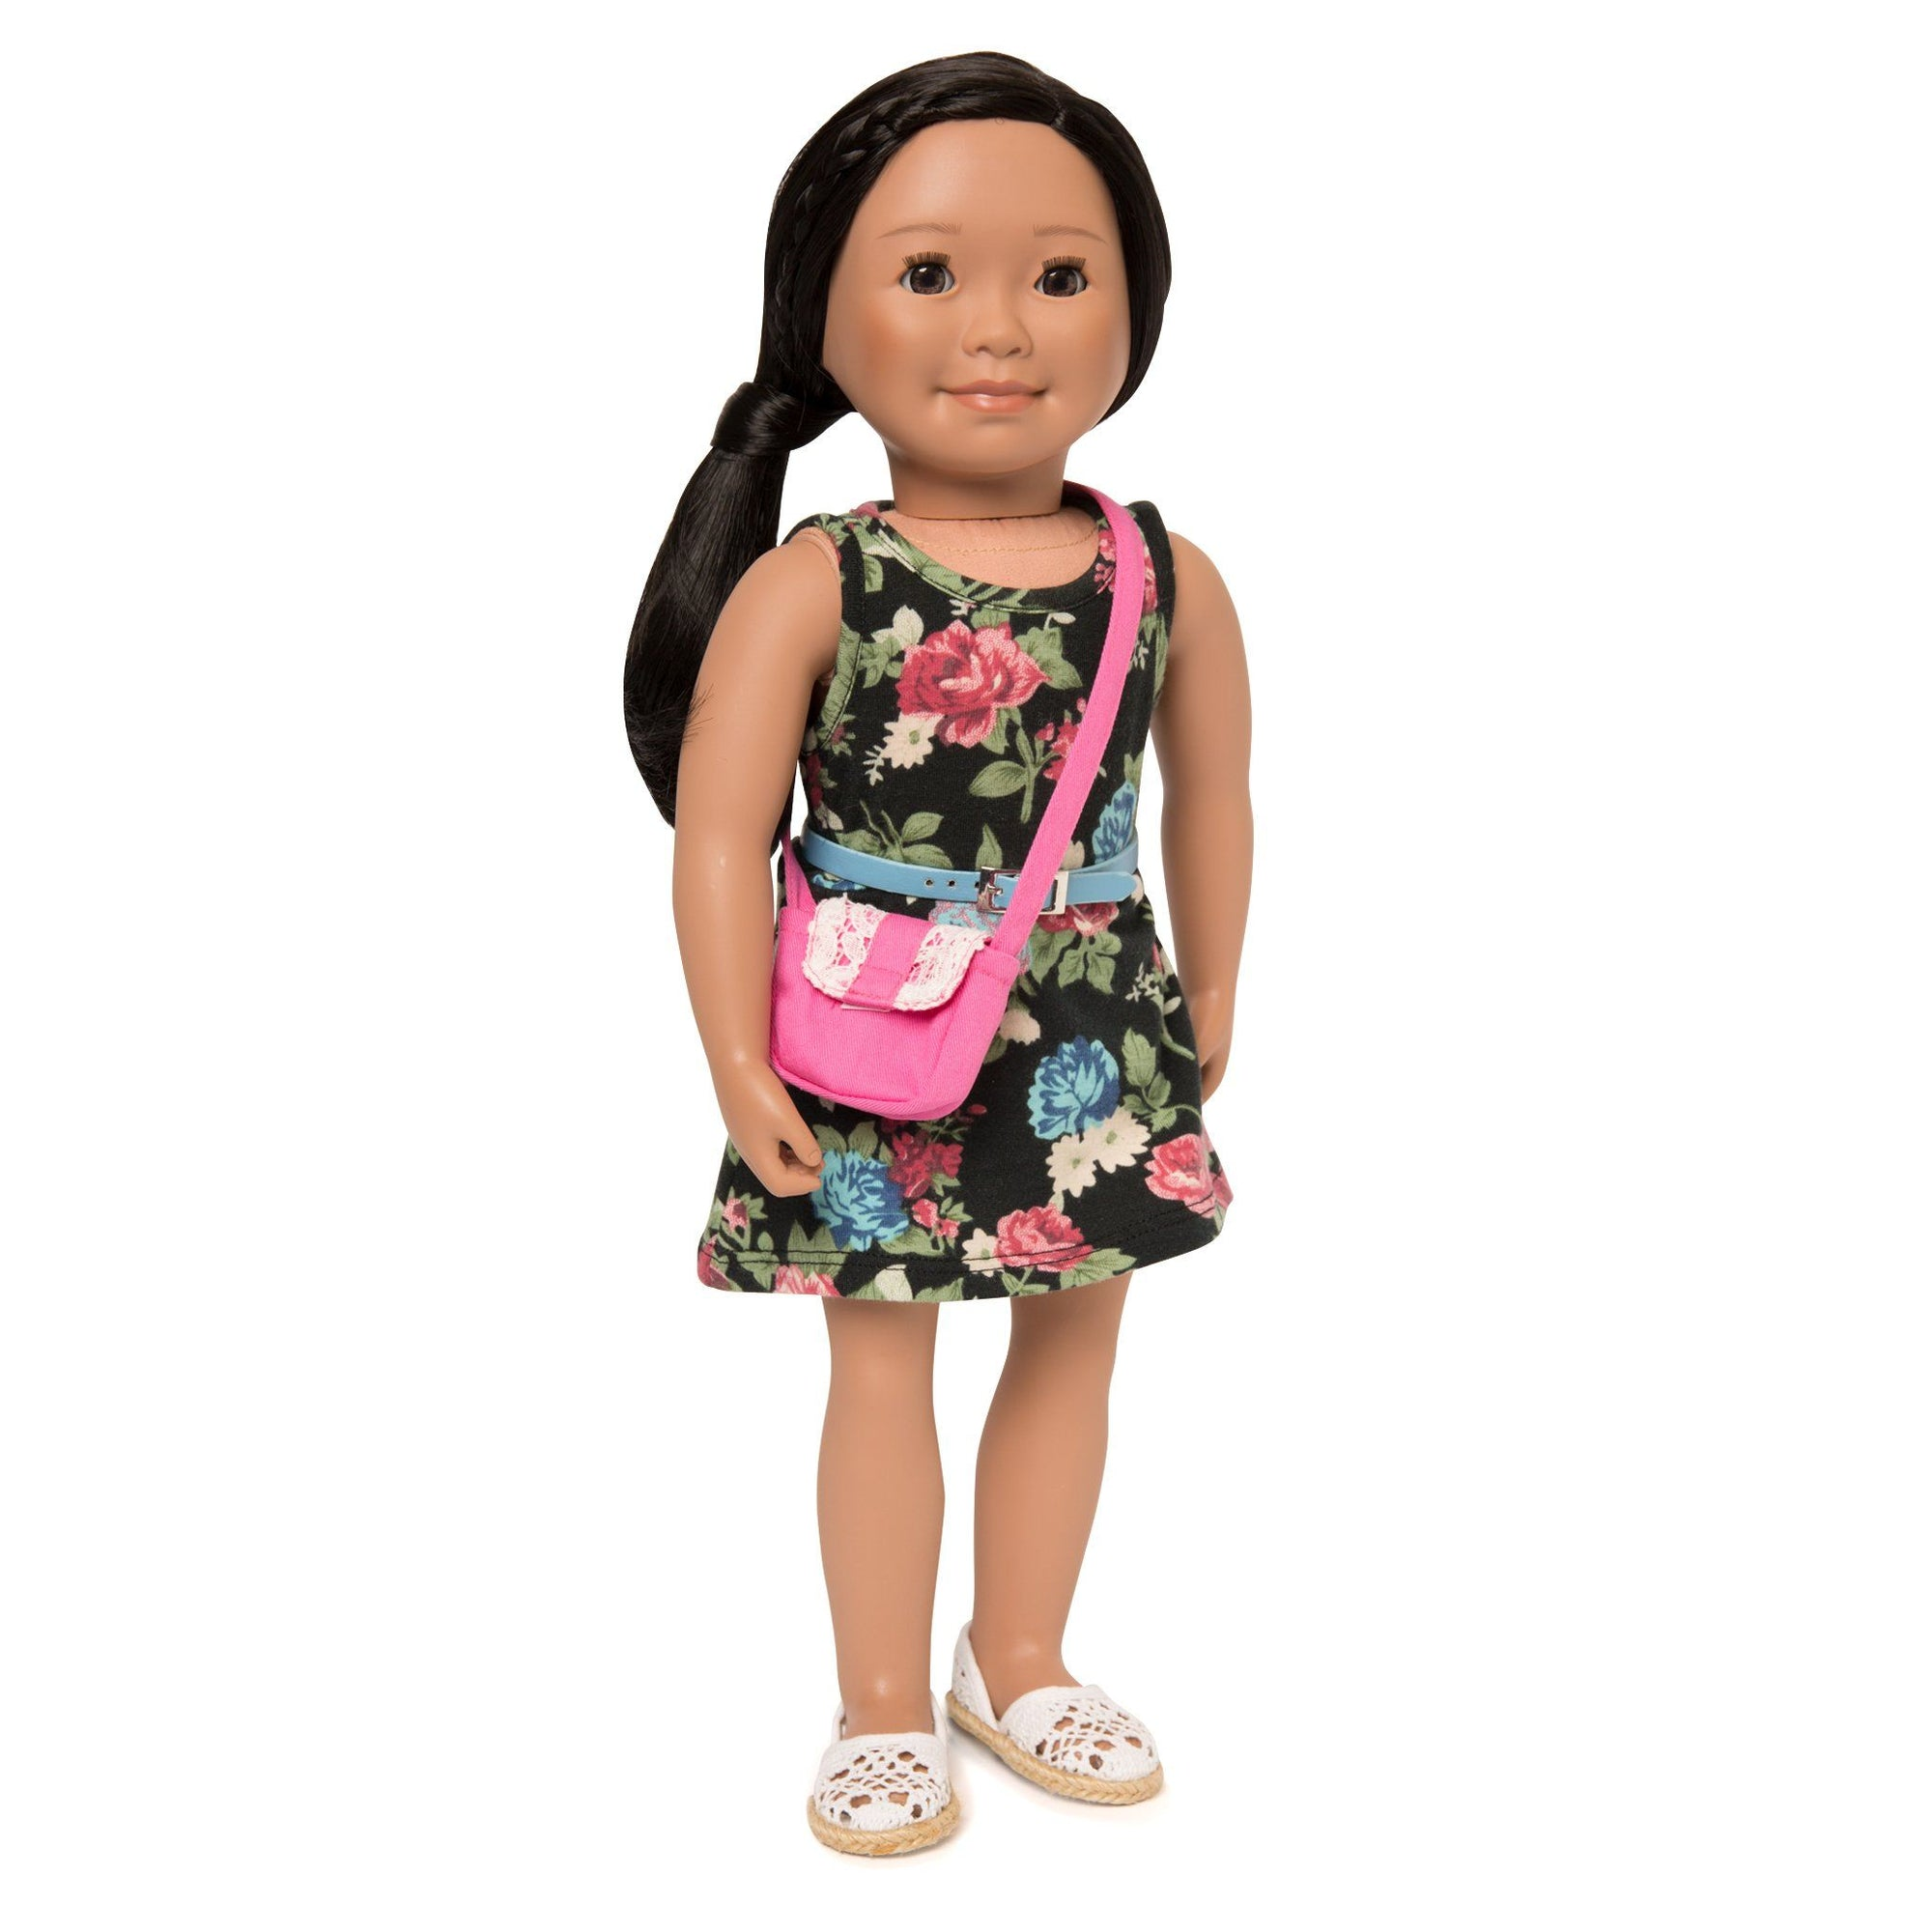 Signs of Spring black floral dress with pink lace accent purse, blue belt, white lace shoes fits all 18 inch dolls.